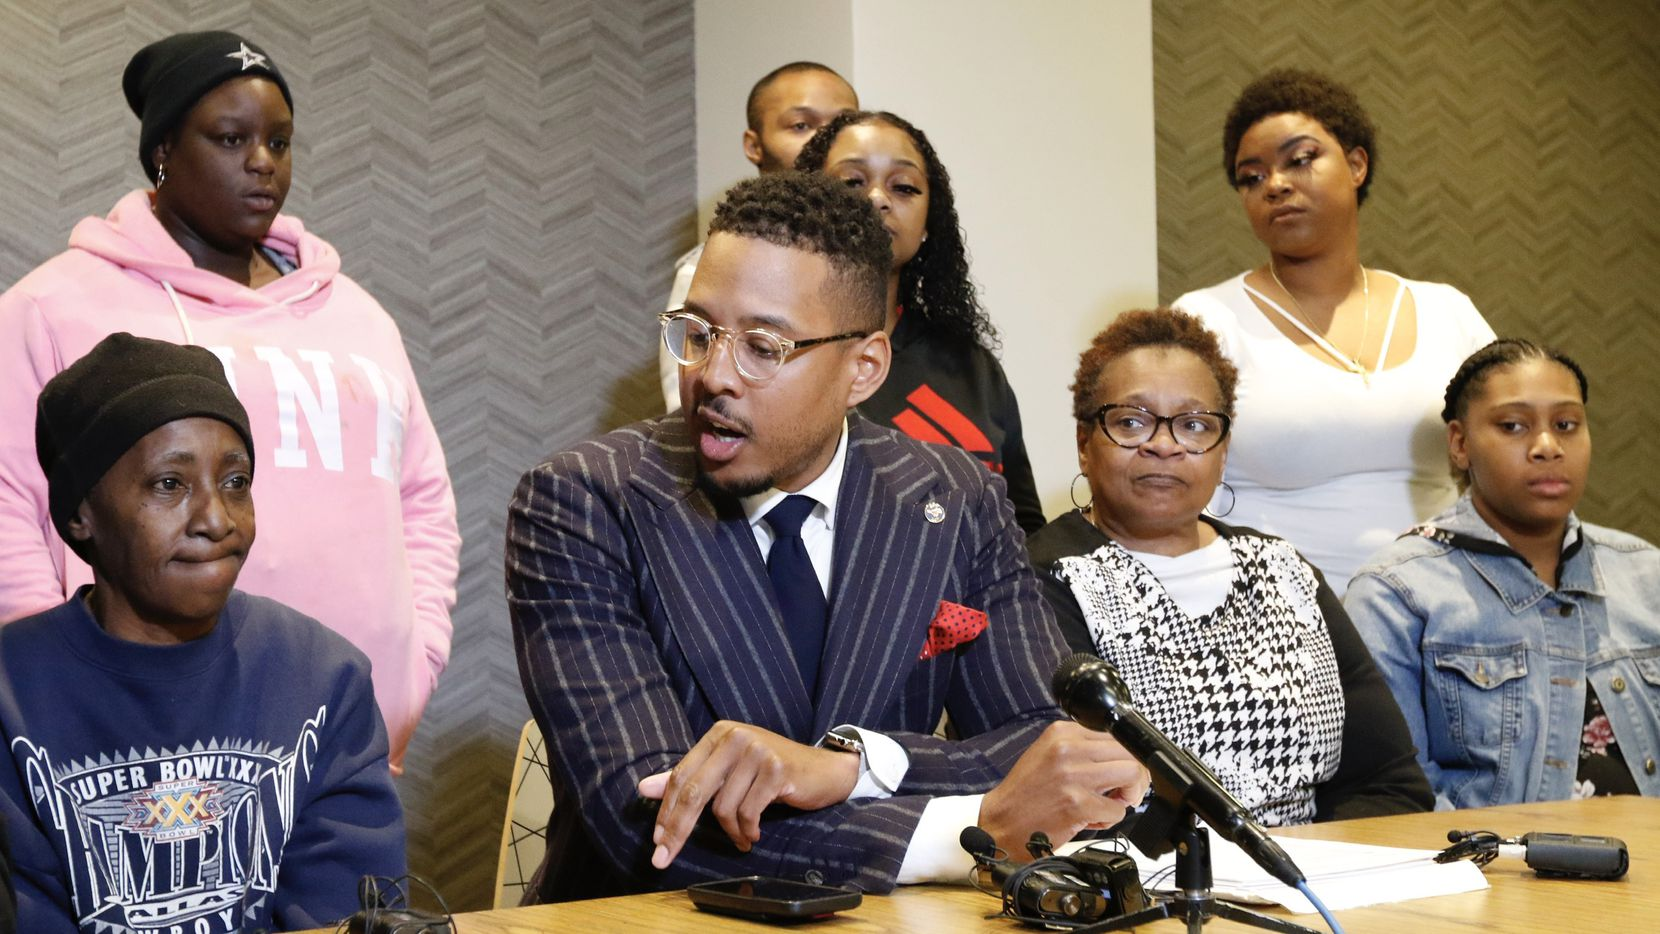 """Ethelyn Ross, left, mother of Diamond Ross, and other family members listen to attorney Justin Moore, center, talk about the video on Friday morning, November 8, 2019 in Dallas, Texas. Dallas police released """"disturbing"""" videos late Wednesday that show the final hours of Diamond S. Ross, a 34-year-old woman who died in police custody of an overdose in 2018. (Irwin Thompson/The Dallas Morning News)."""